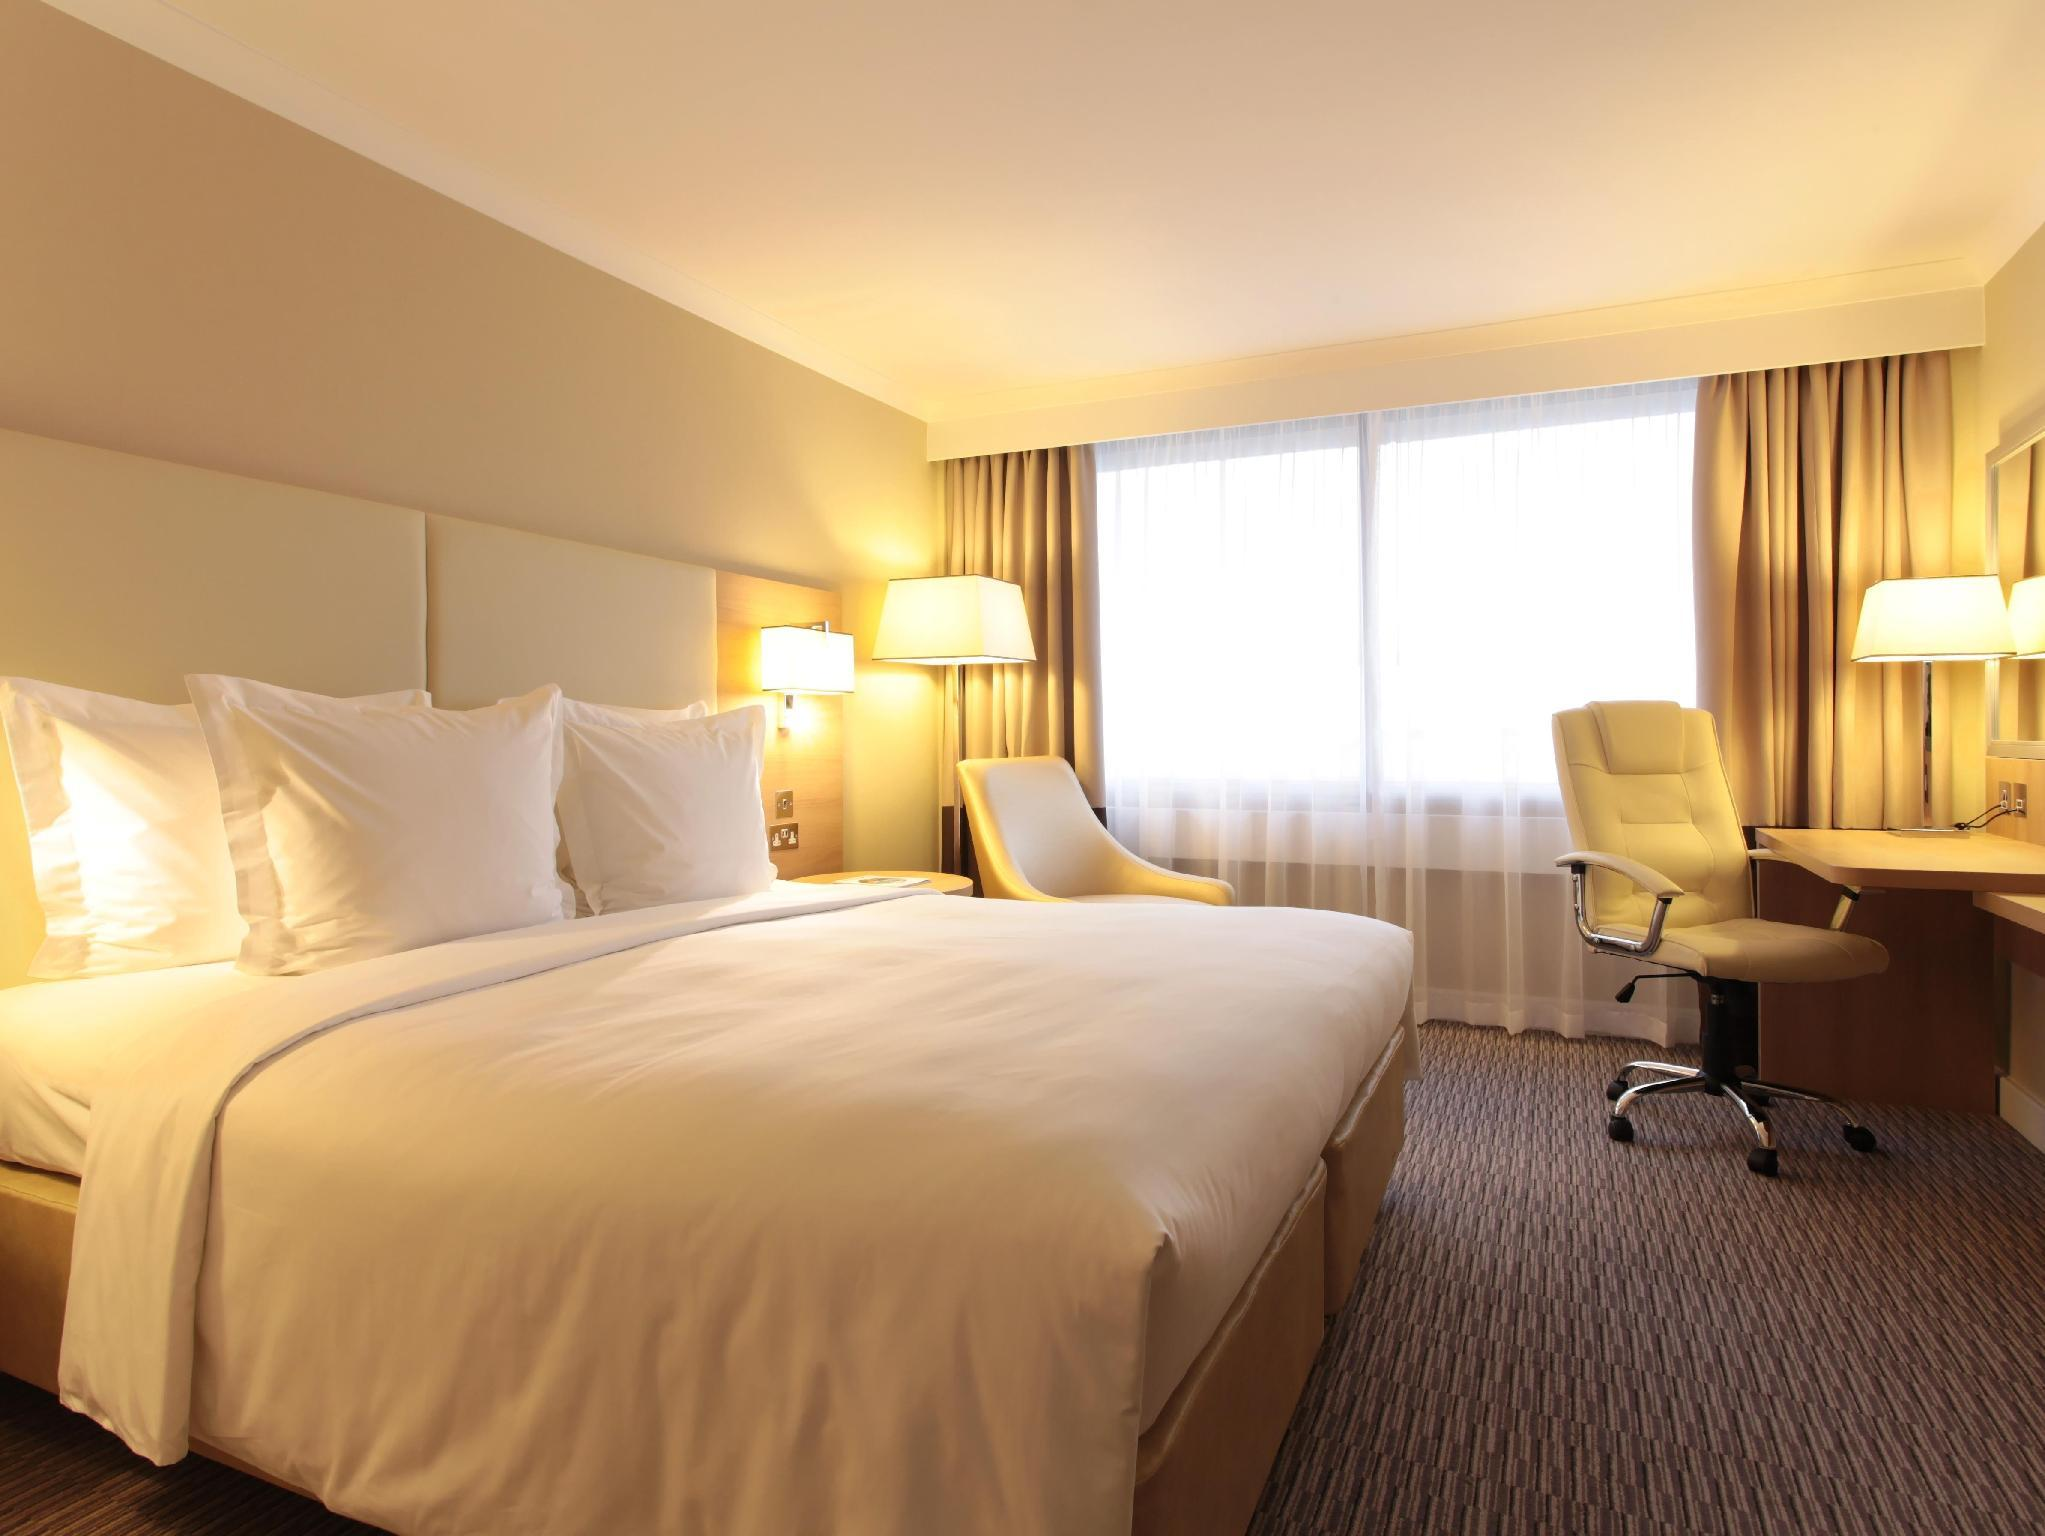 Standard Room, Guest room, 1 Queen or 2 Twin/Single Bed(s)